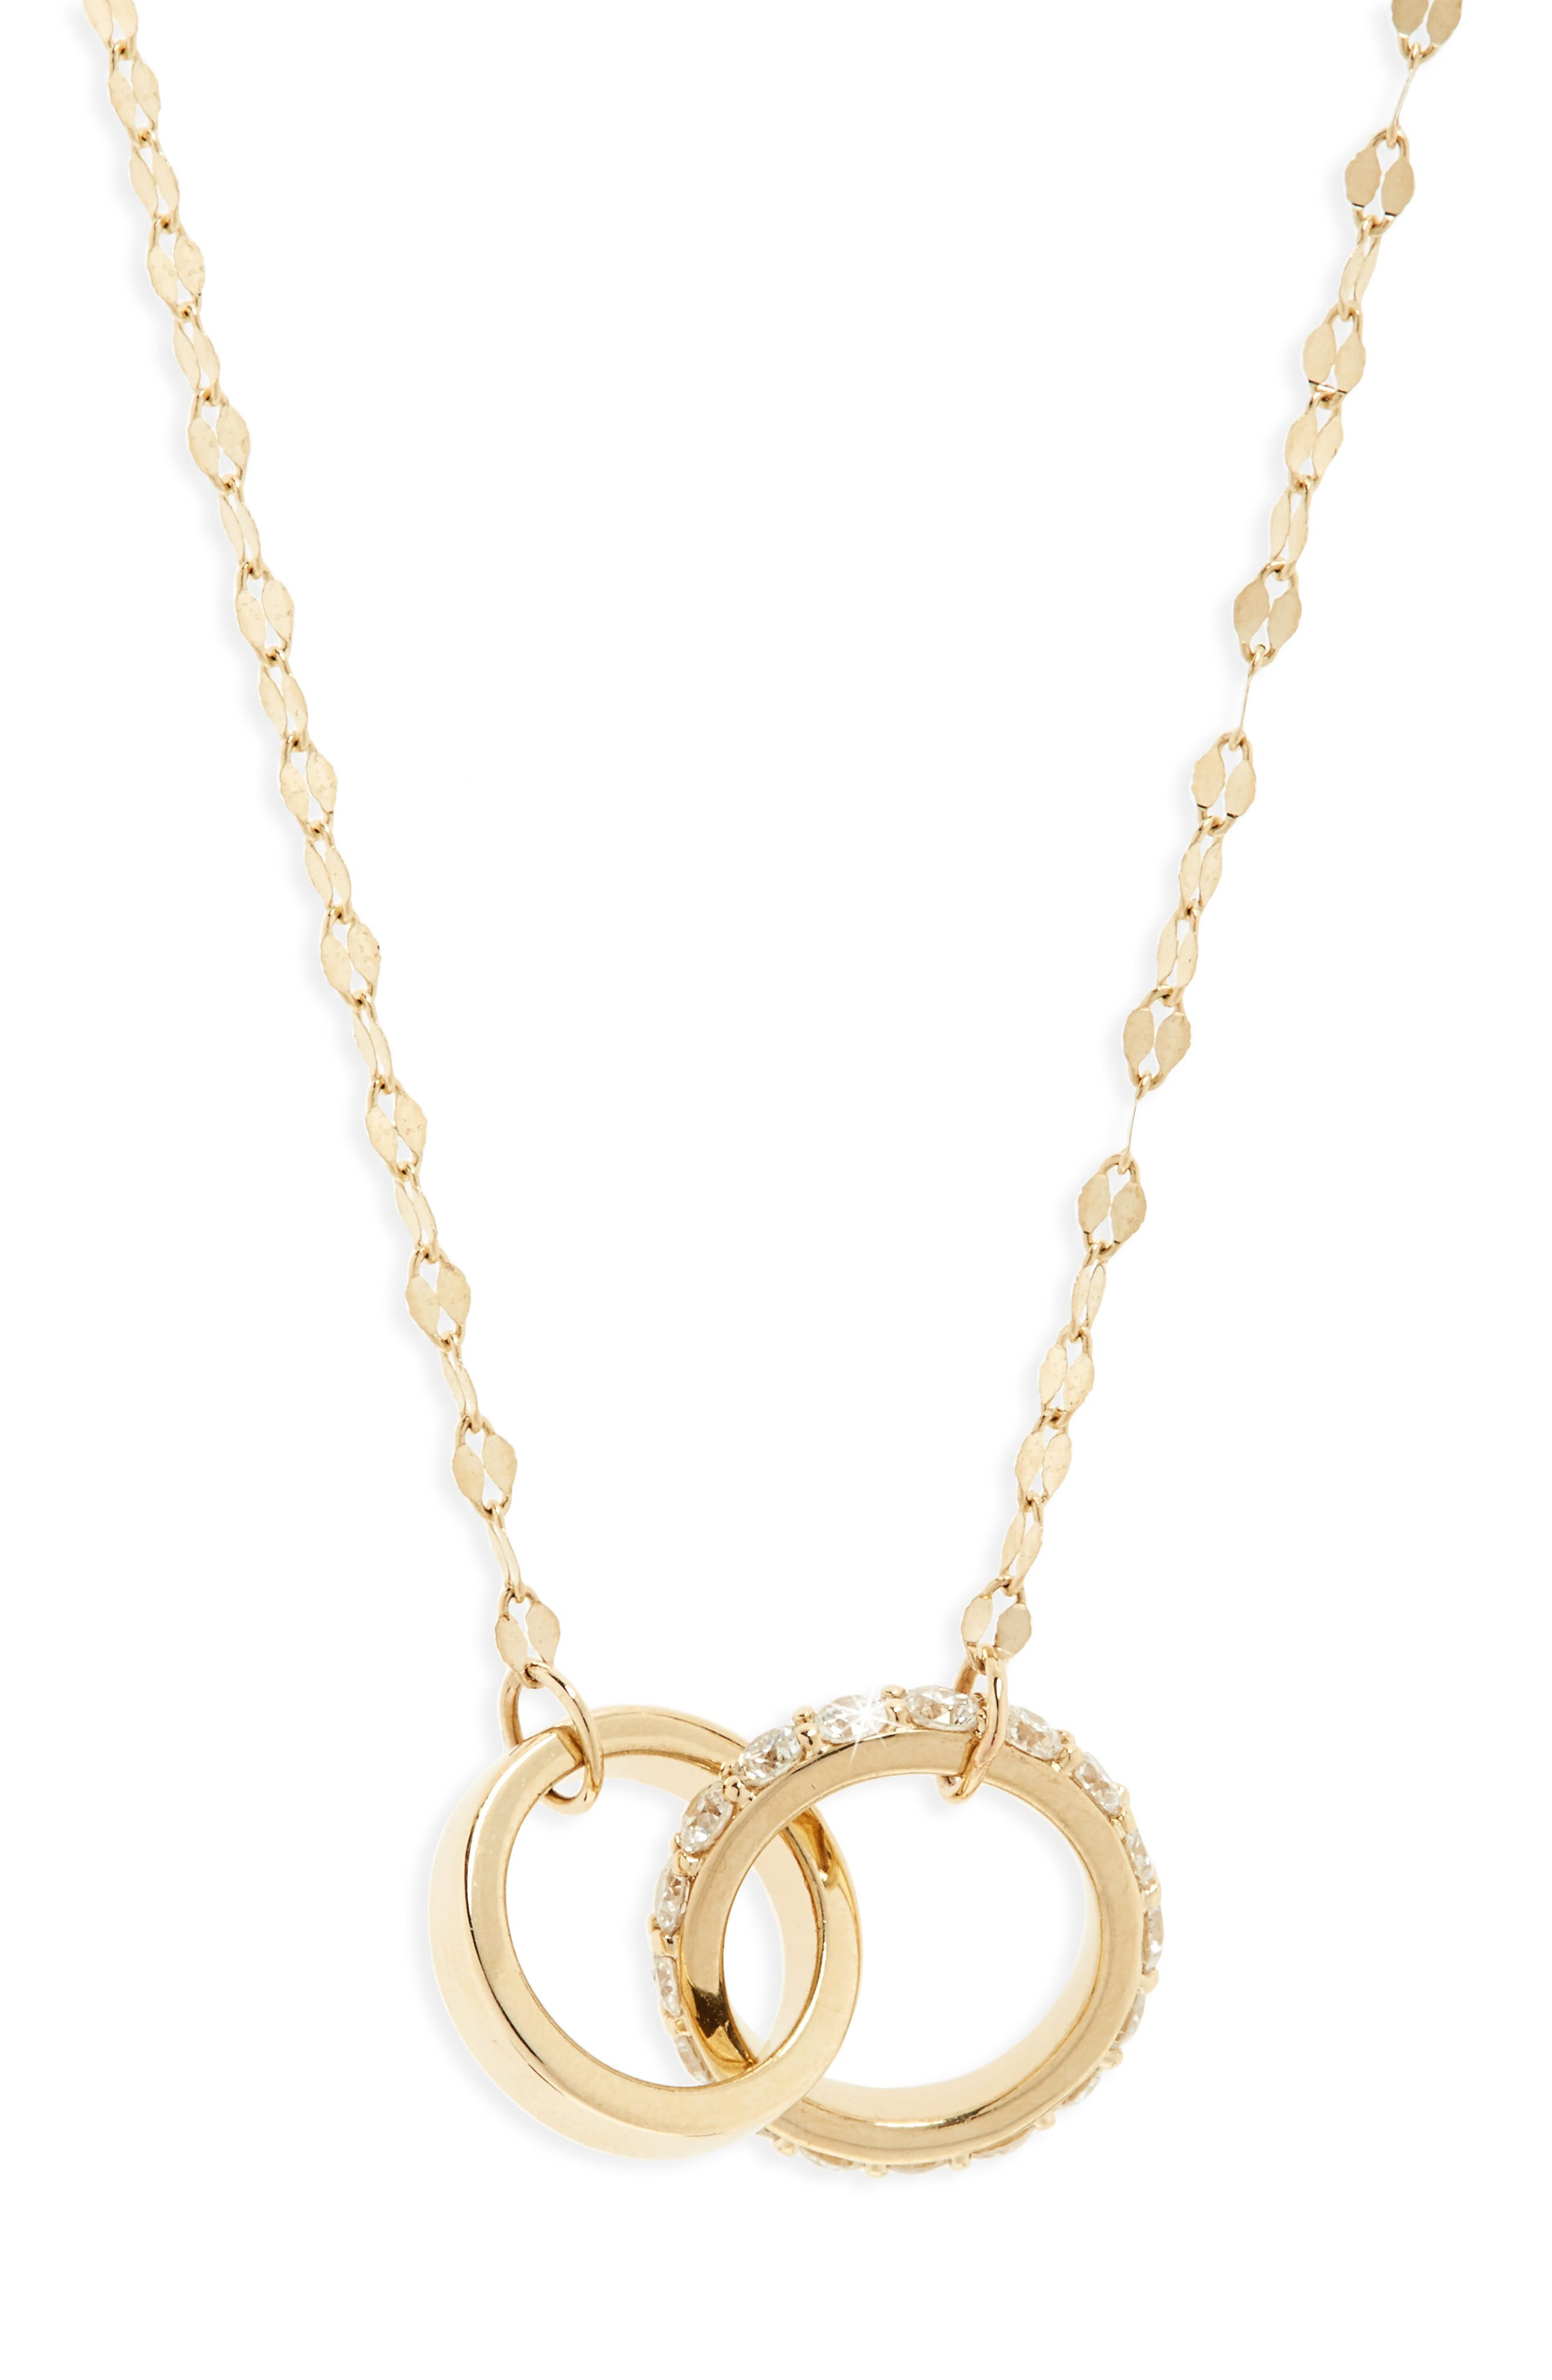 Flawless Diamond Link Pendant Necklace,                         Main,                         color, Yellow Gold